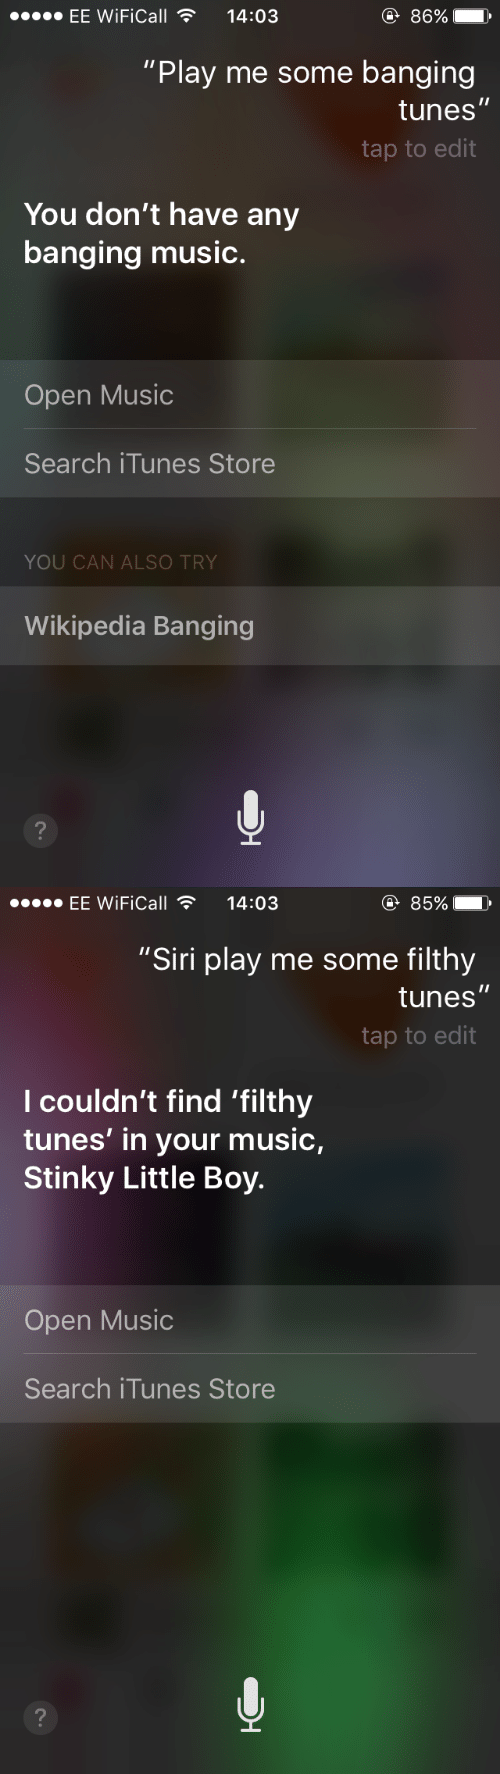 "Music, Siri, and Wikipedia: EE WiFiCall14:03  86%  ""Play me some banging  tunes  tap to edit  You don't have any  banging music.  Open Music  Search iTunes Store  YOU CAN ALSO TRY  Wikipedia Banging   EE WiFiCall14:03  ④ 85%  ""Siri play me some filthy  tunes  tap to edit  l couldn't find 'filthy  tunes' in your music,  Stinky Little Boy.  Open Music  Search iTunes Store"